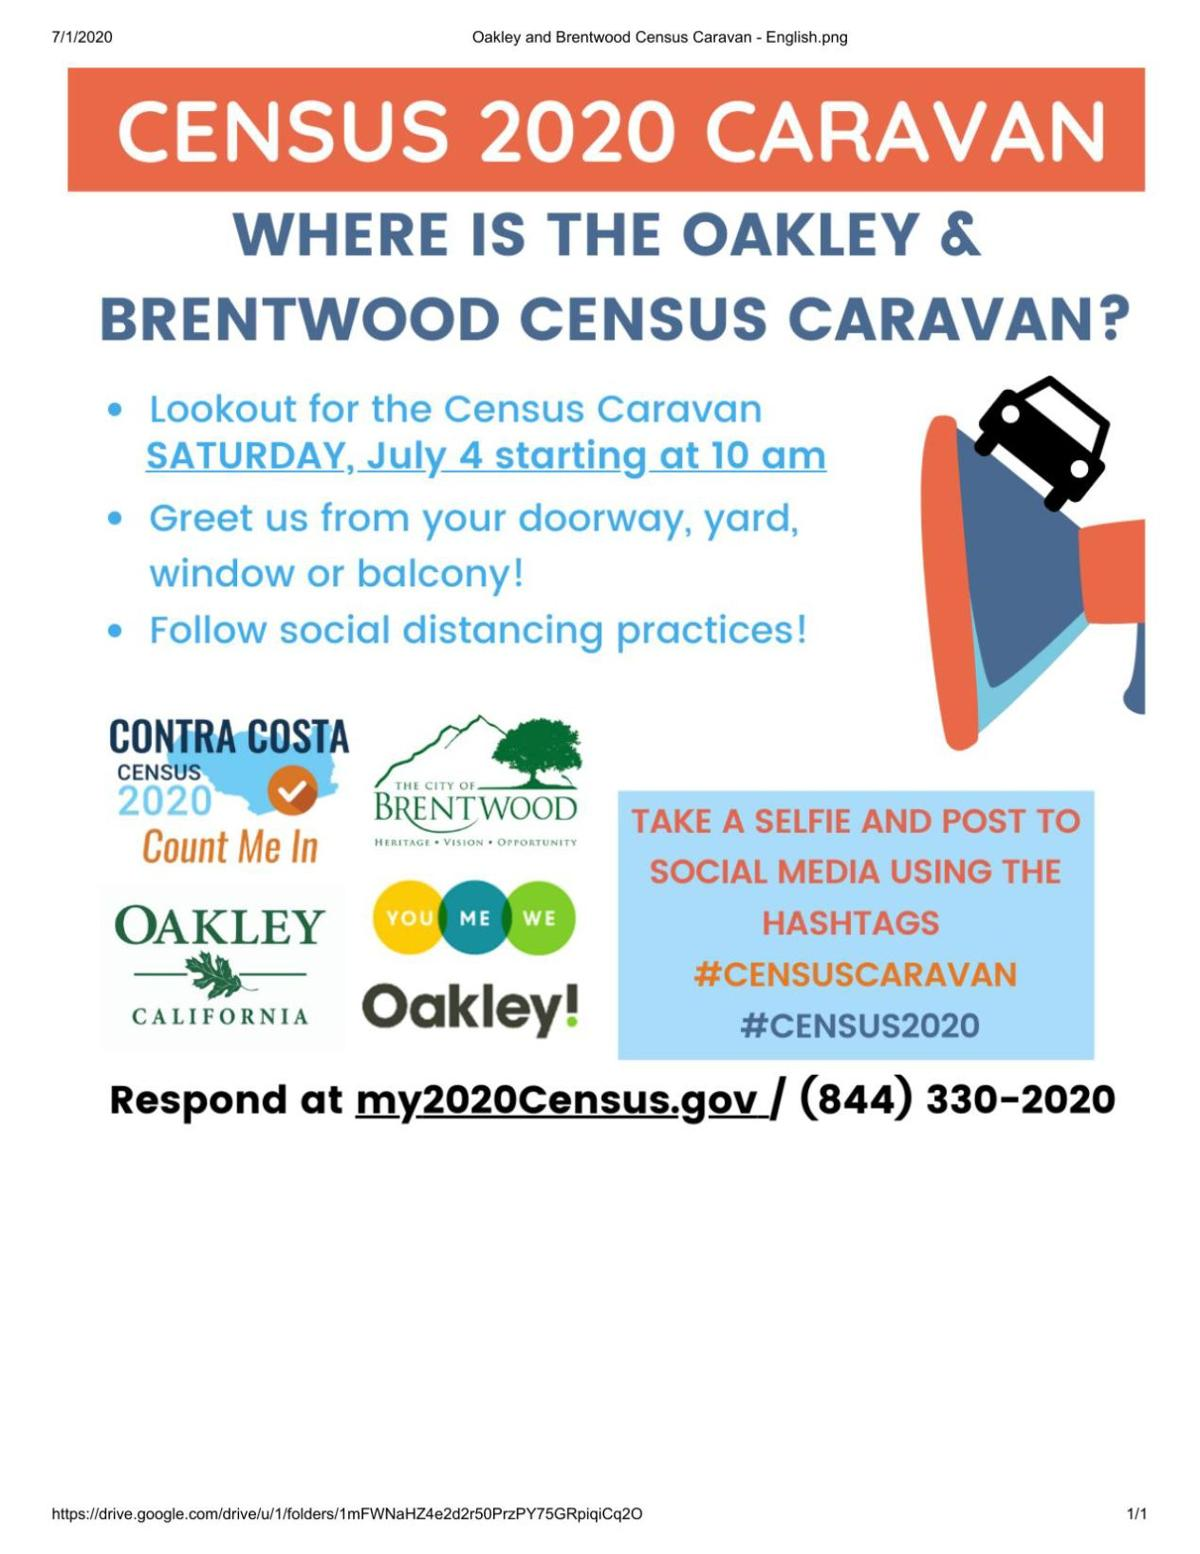 Oakley to Brentwood Census Caravan_English